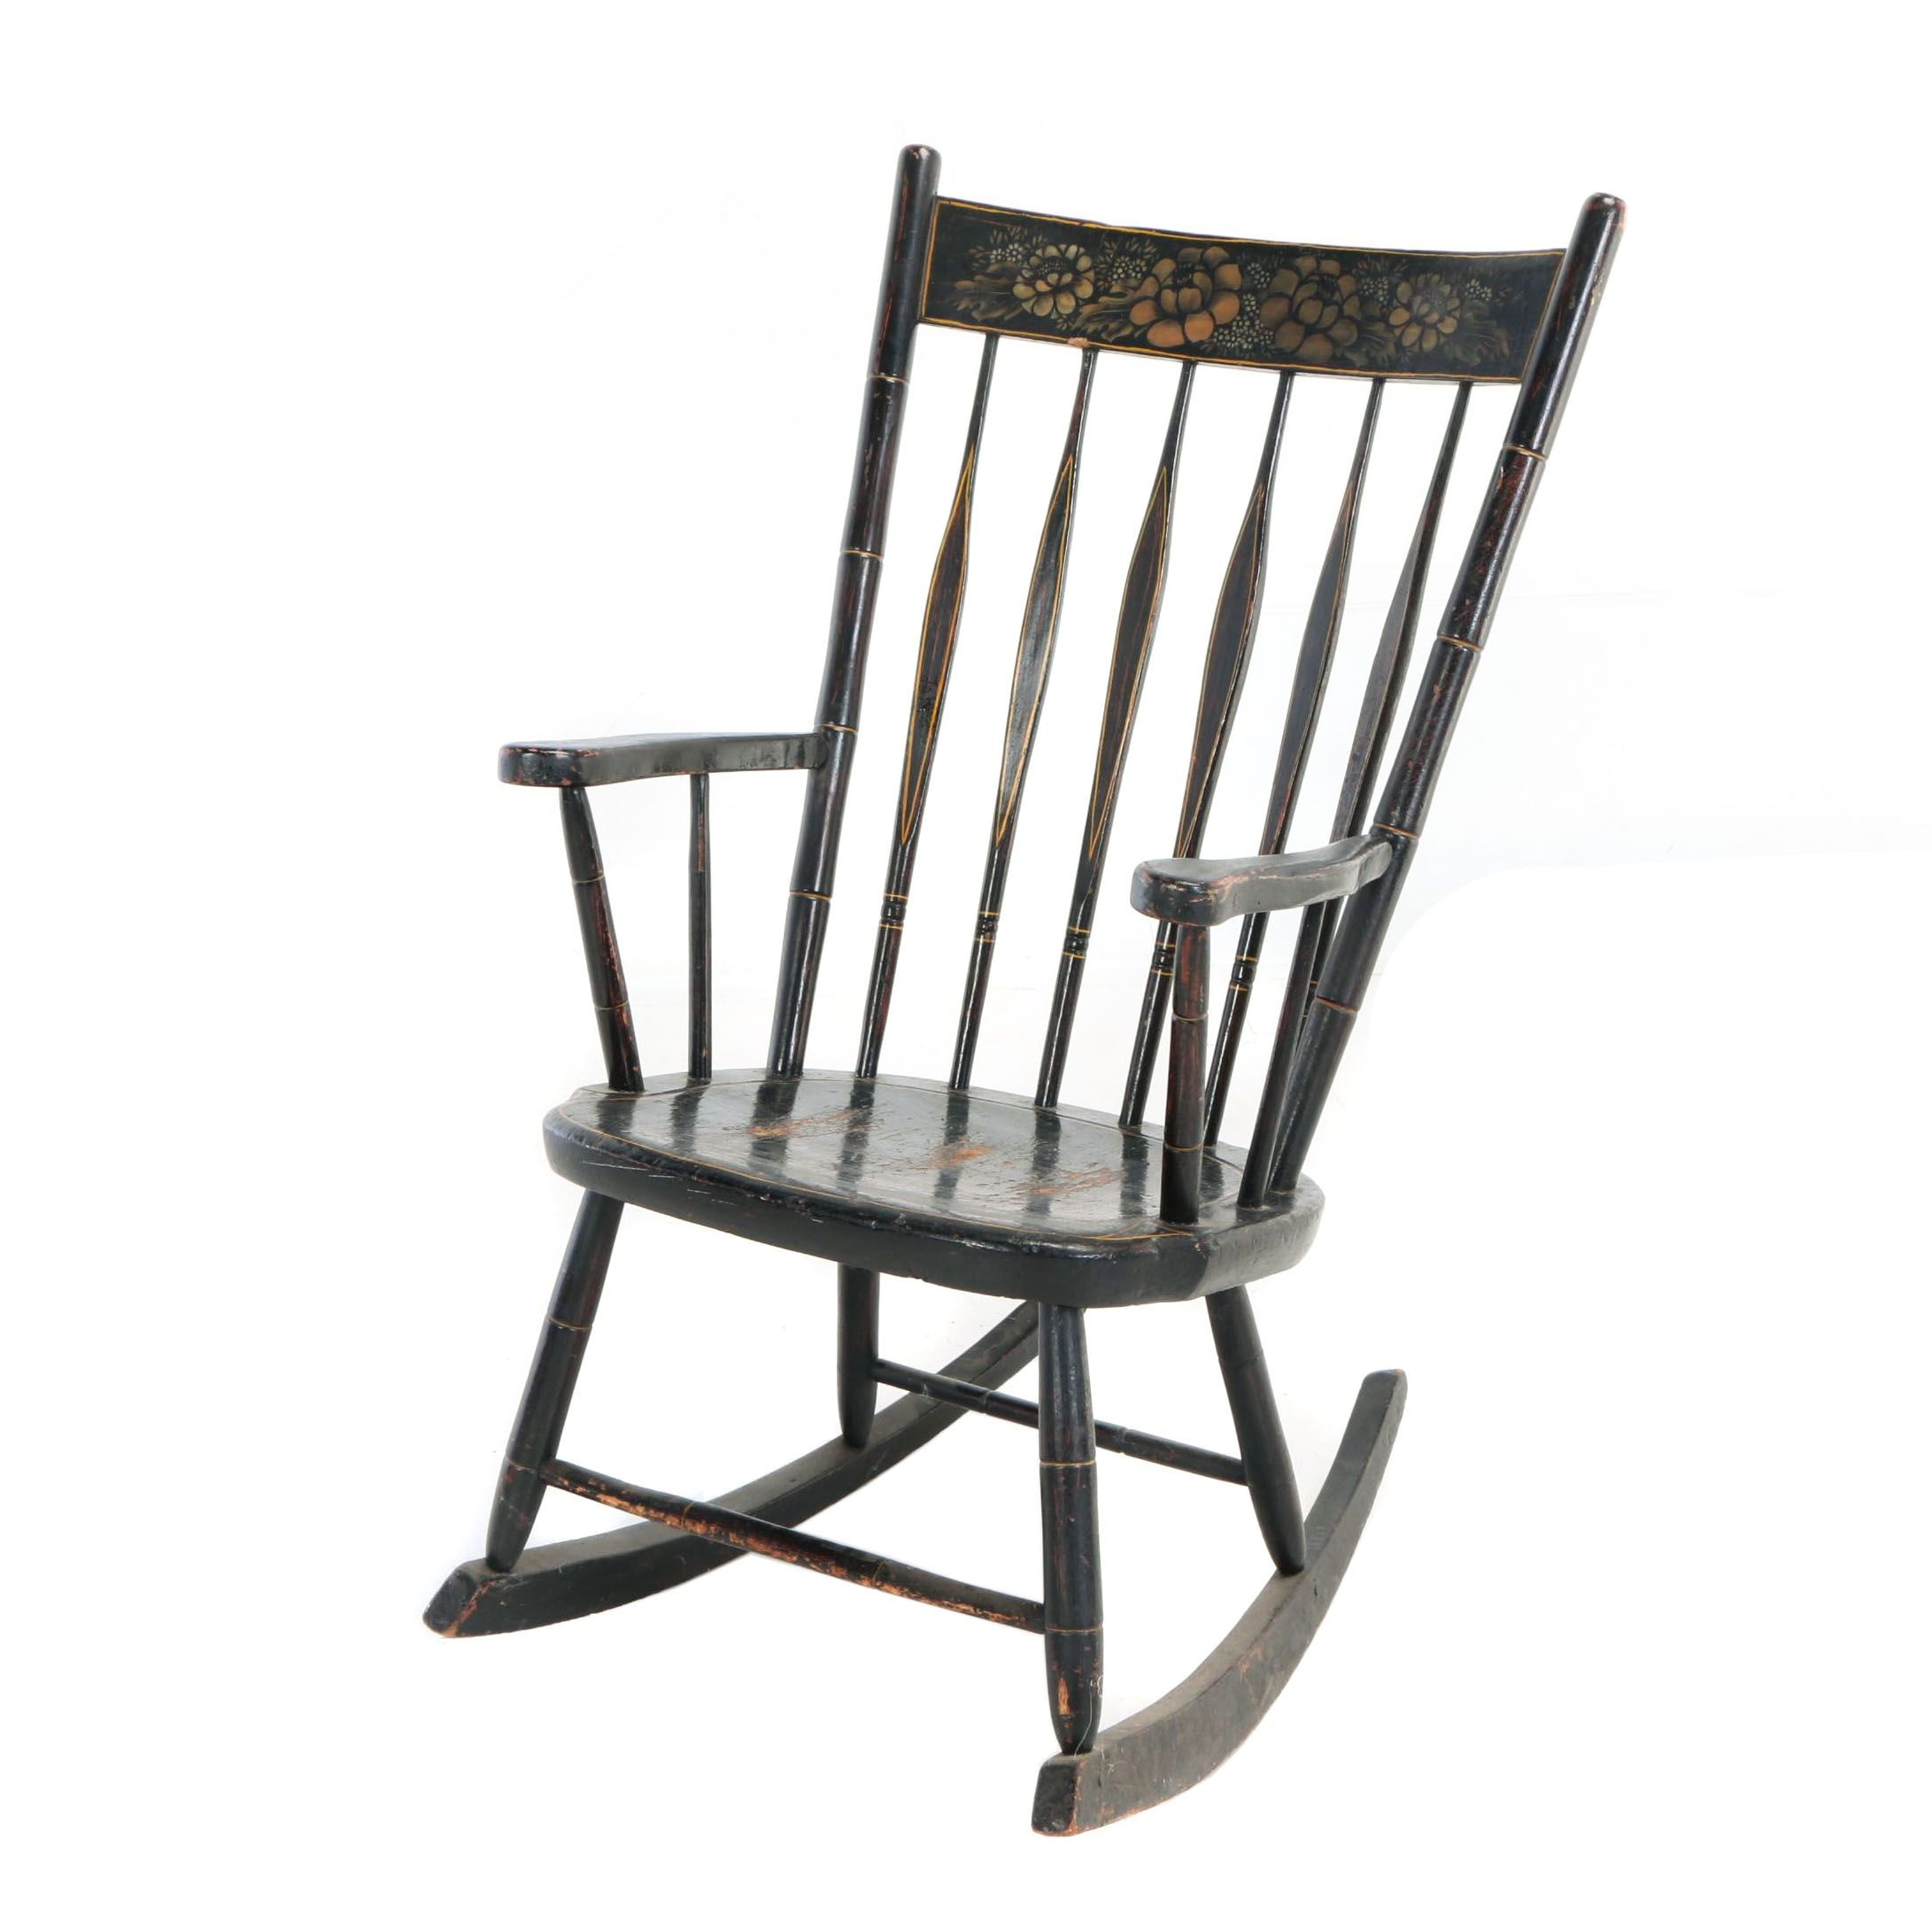 American Grain-Painted and Gilt-Stenciled Rocking Armchair, 19th Century